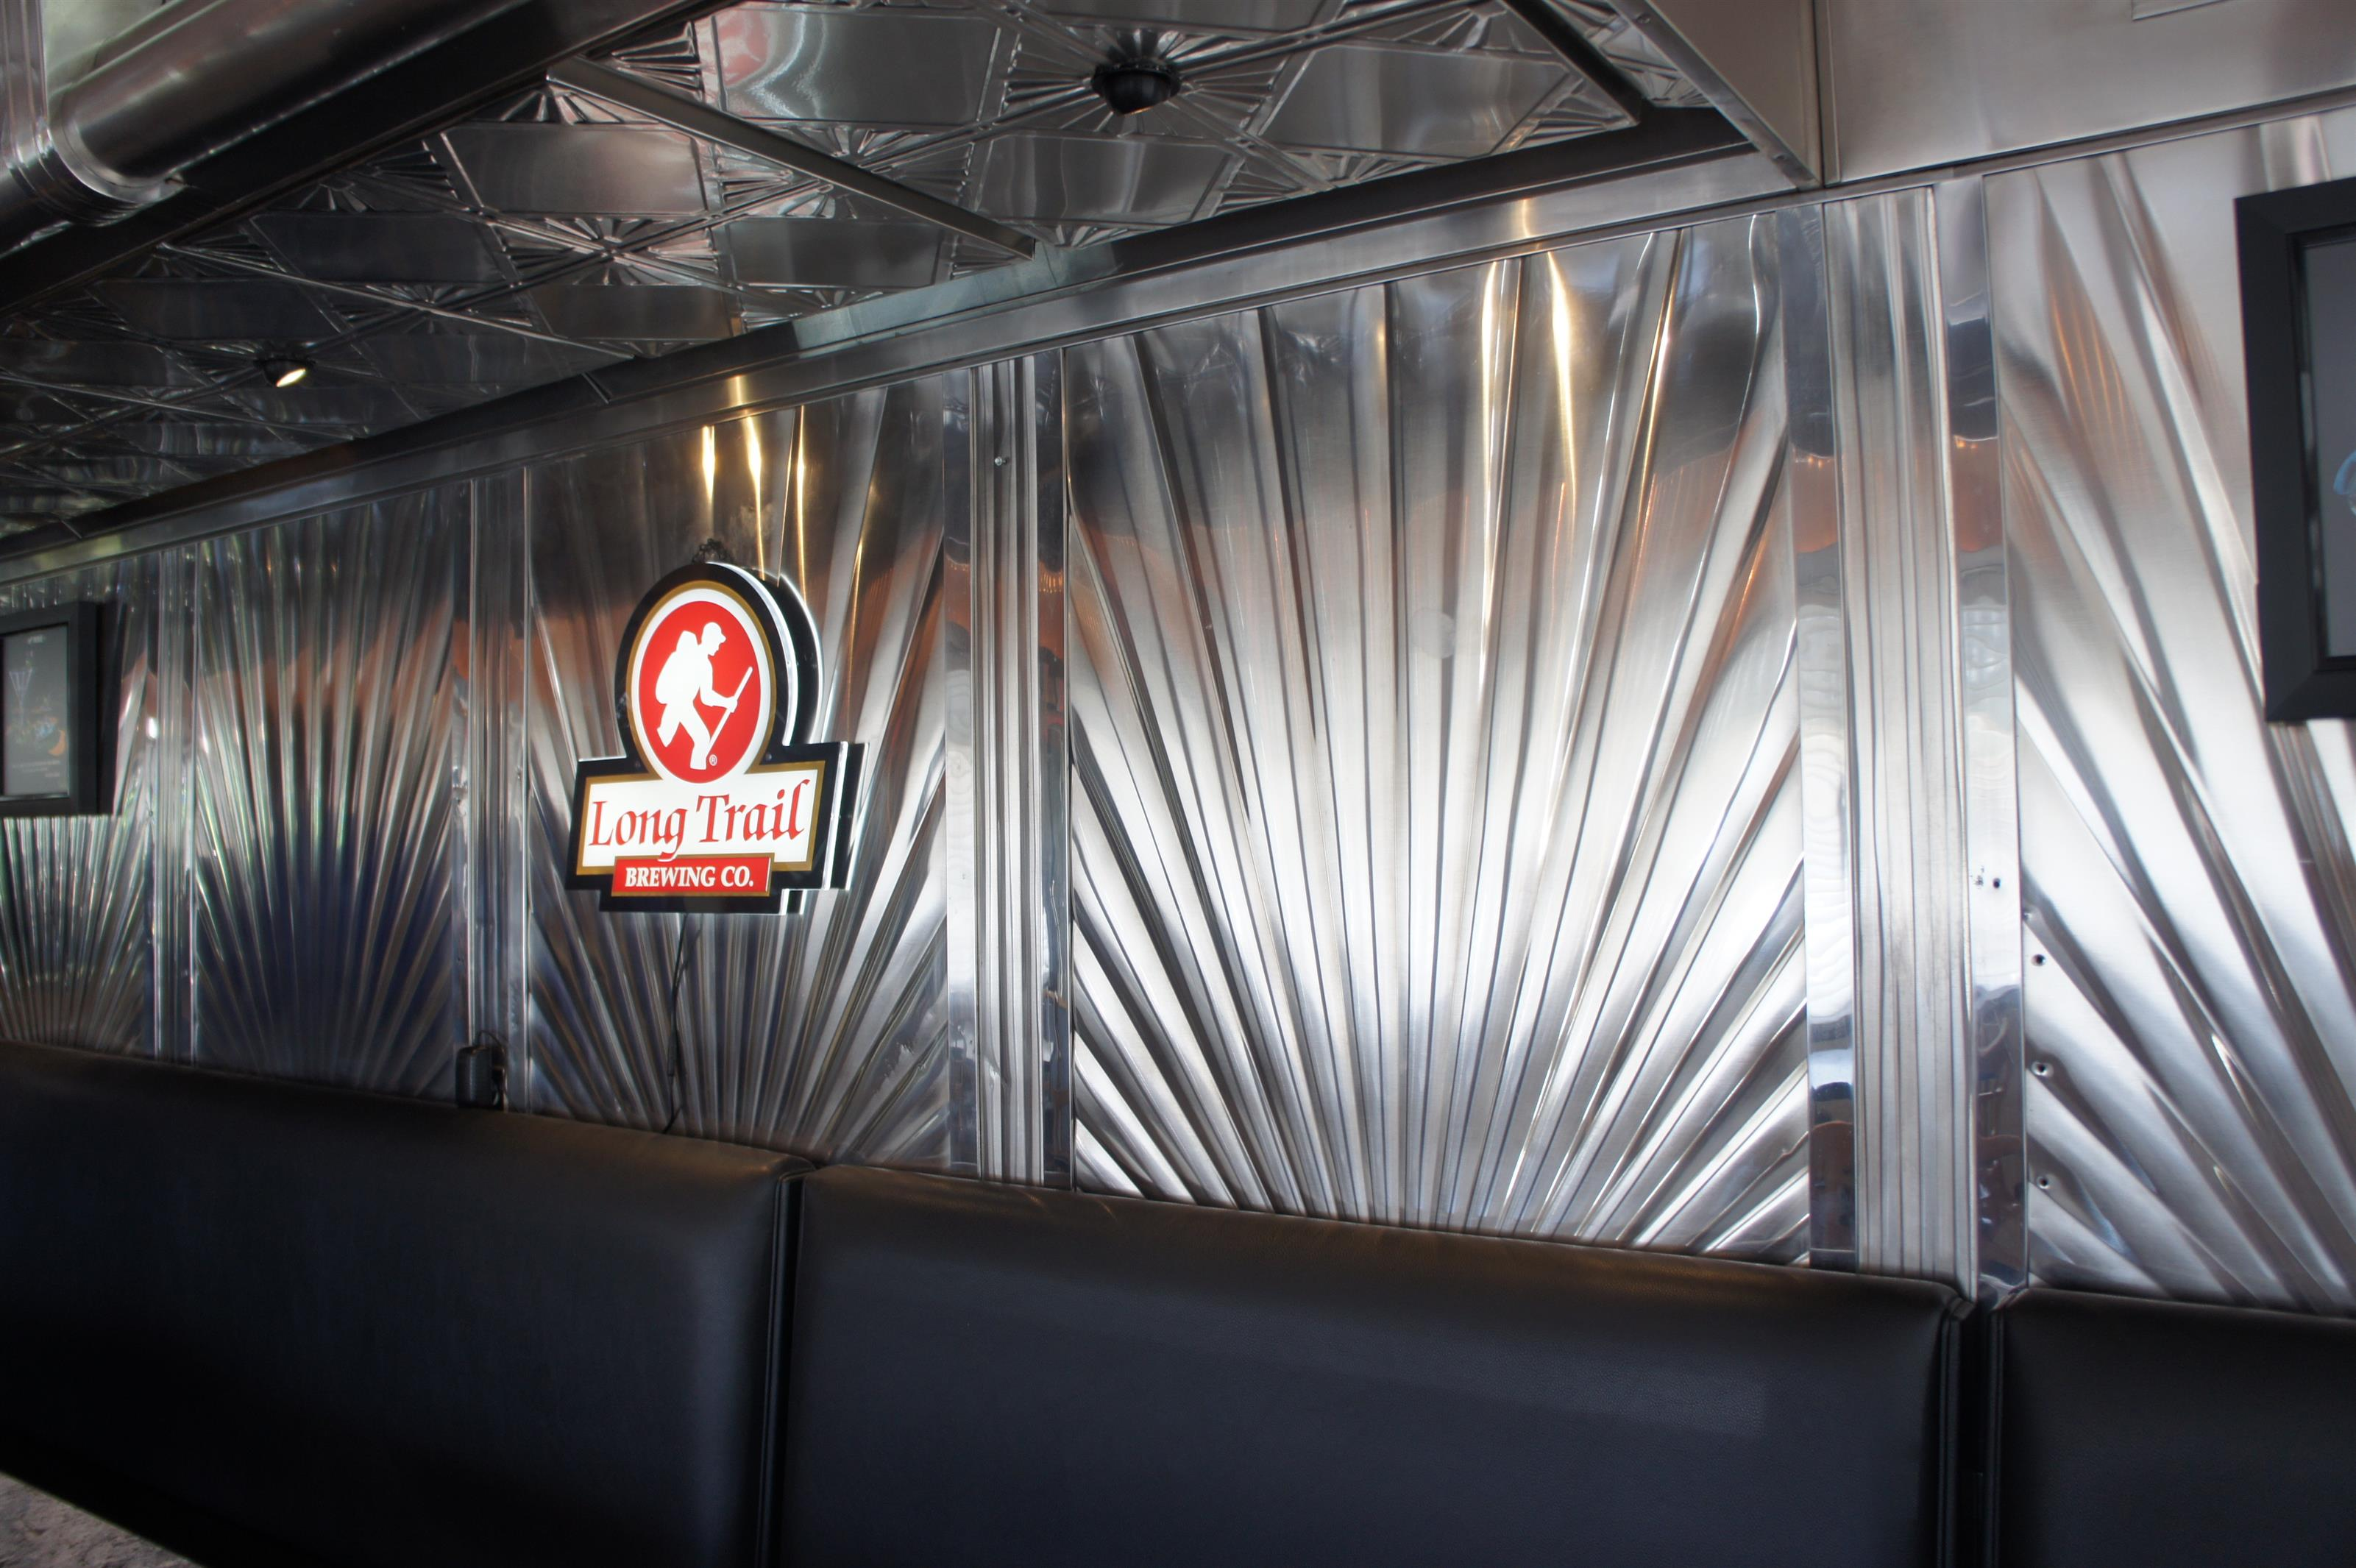 Decorative wall and sign over the booth seats